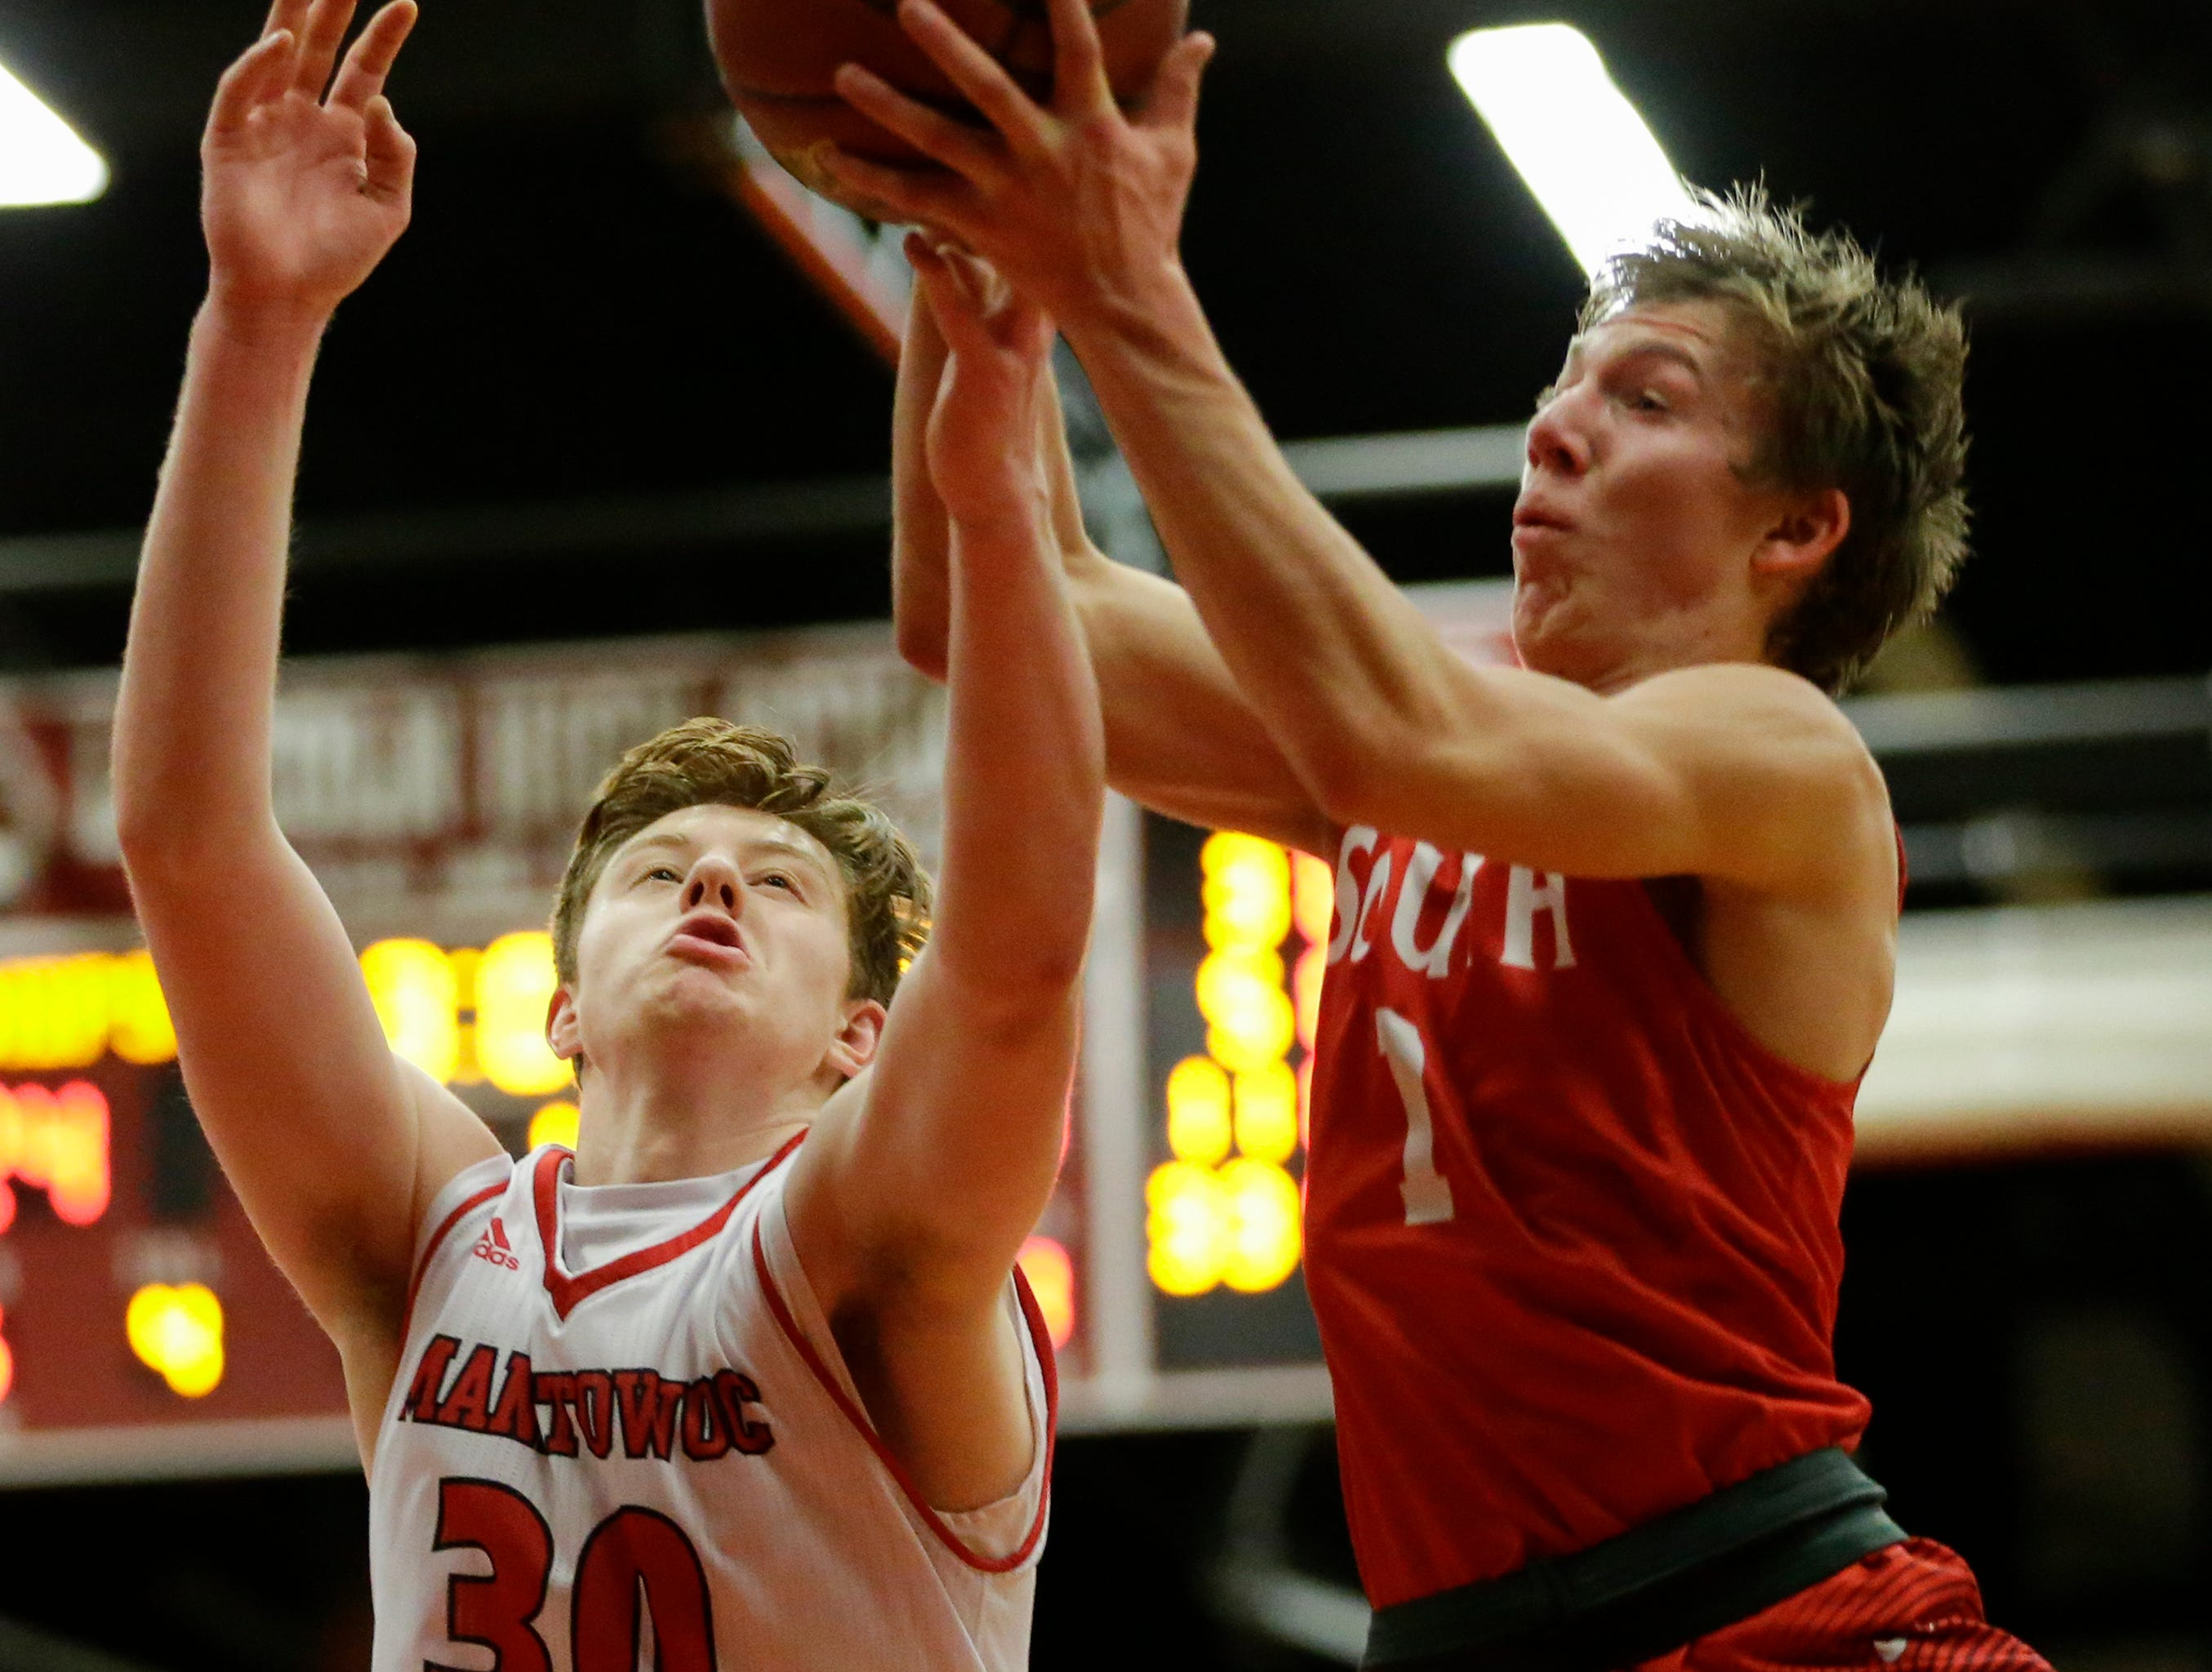 Sheboygan South's Austin Boeldt (1) battles Manitowoc Lincoln's Alec Messman (30) for a rebound at Manitowoc Lincoln High School Tuesday, February 5, 2019, in Manitowoc, Wis. Joshua Clark/USA TODAY NETWORK-Wisconsin